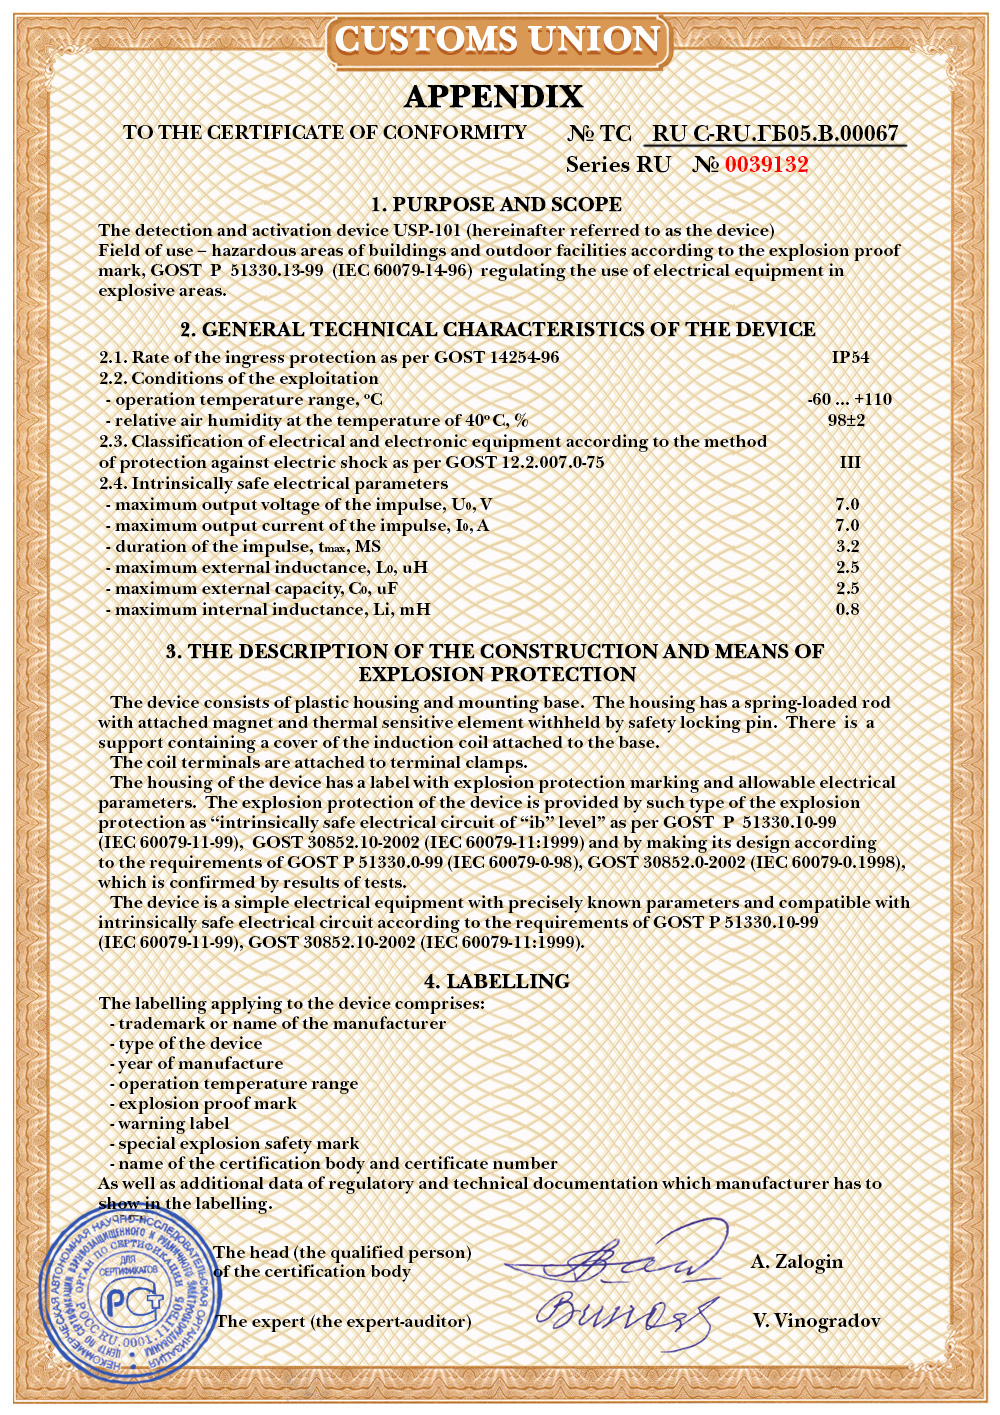 explosion protection document